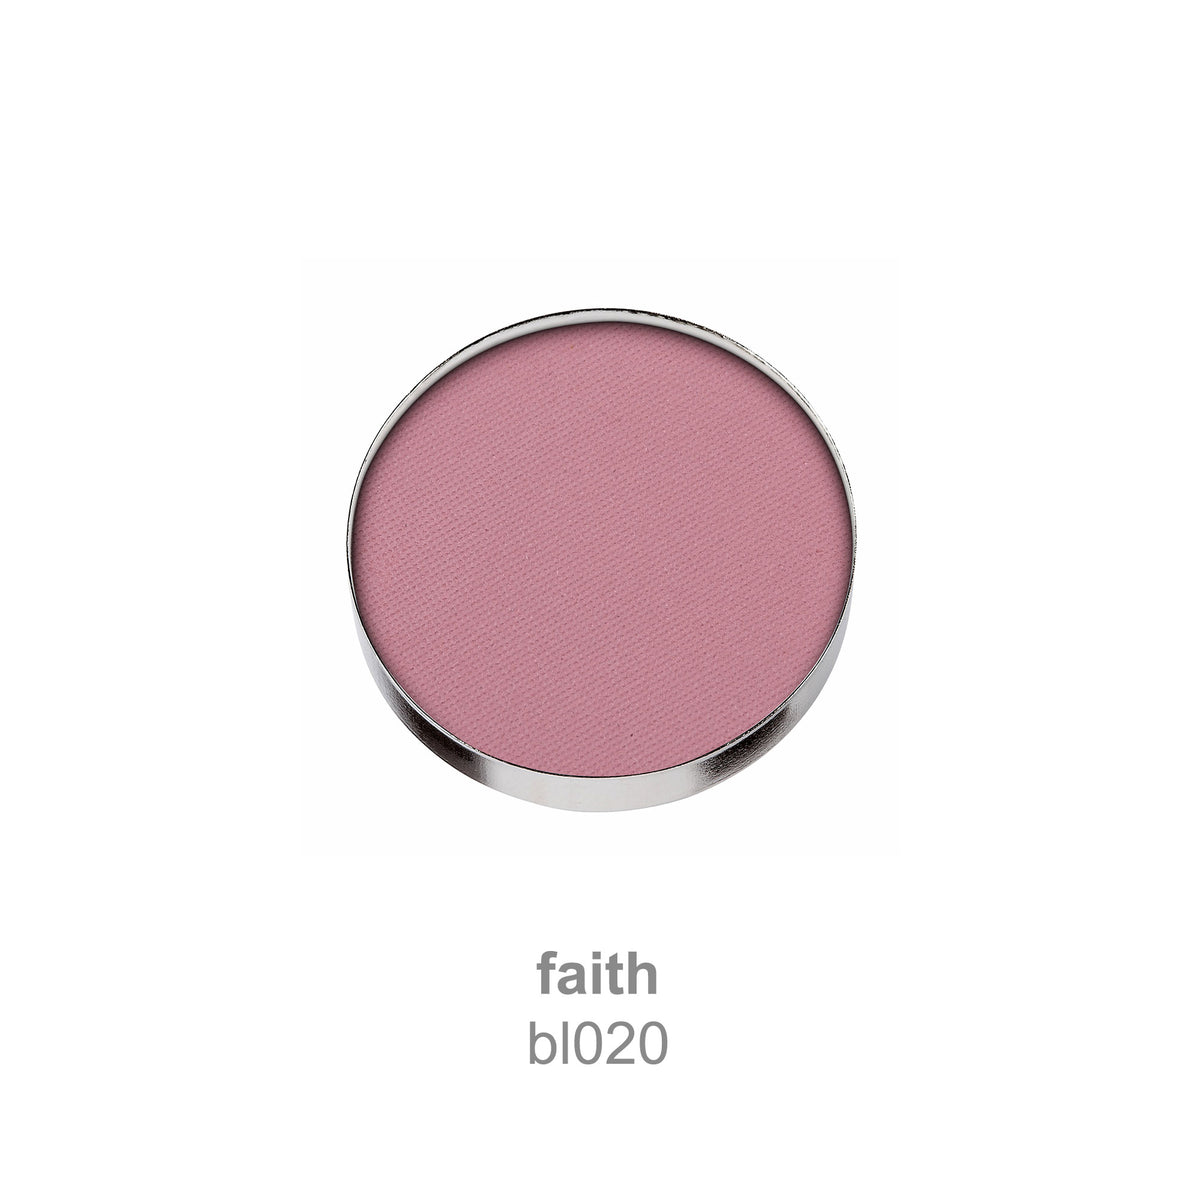 faith bl020